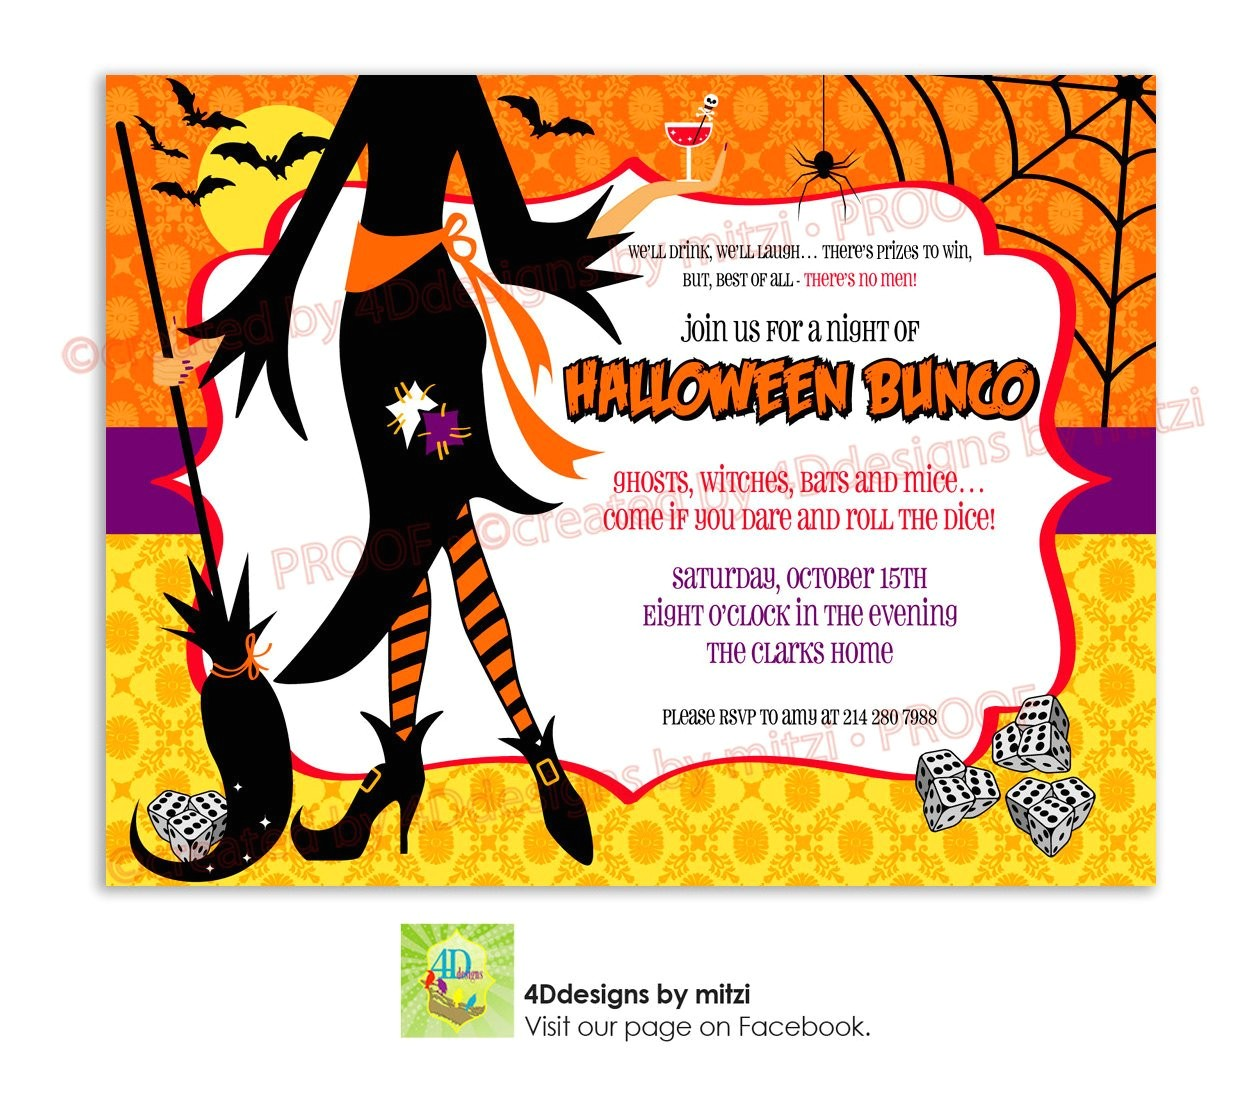 halloween bunco party invitation